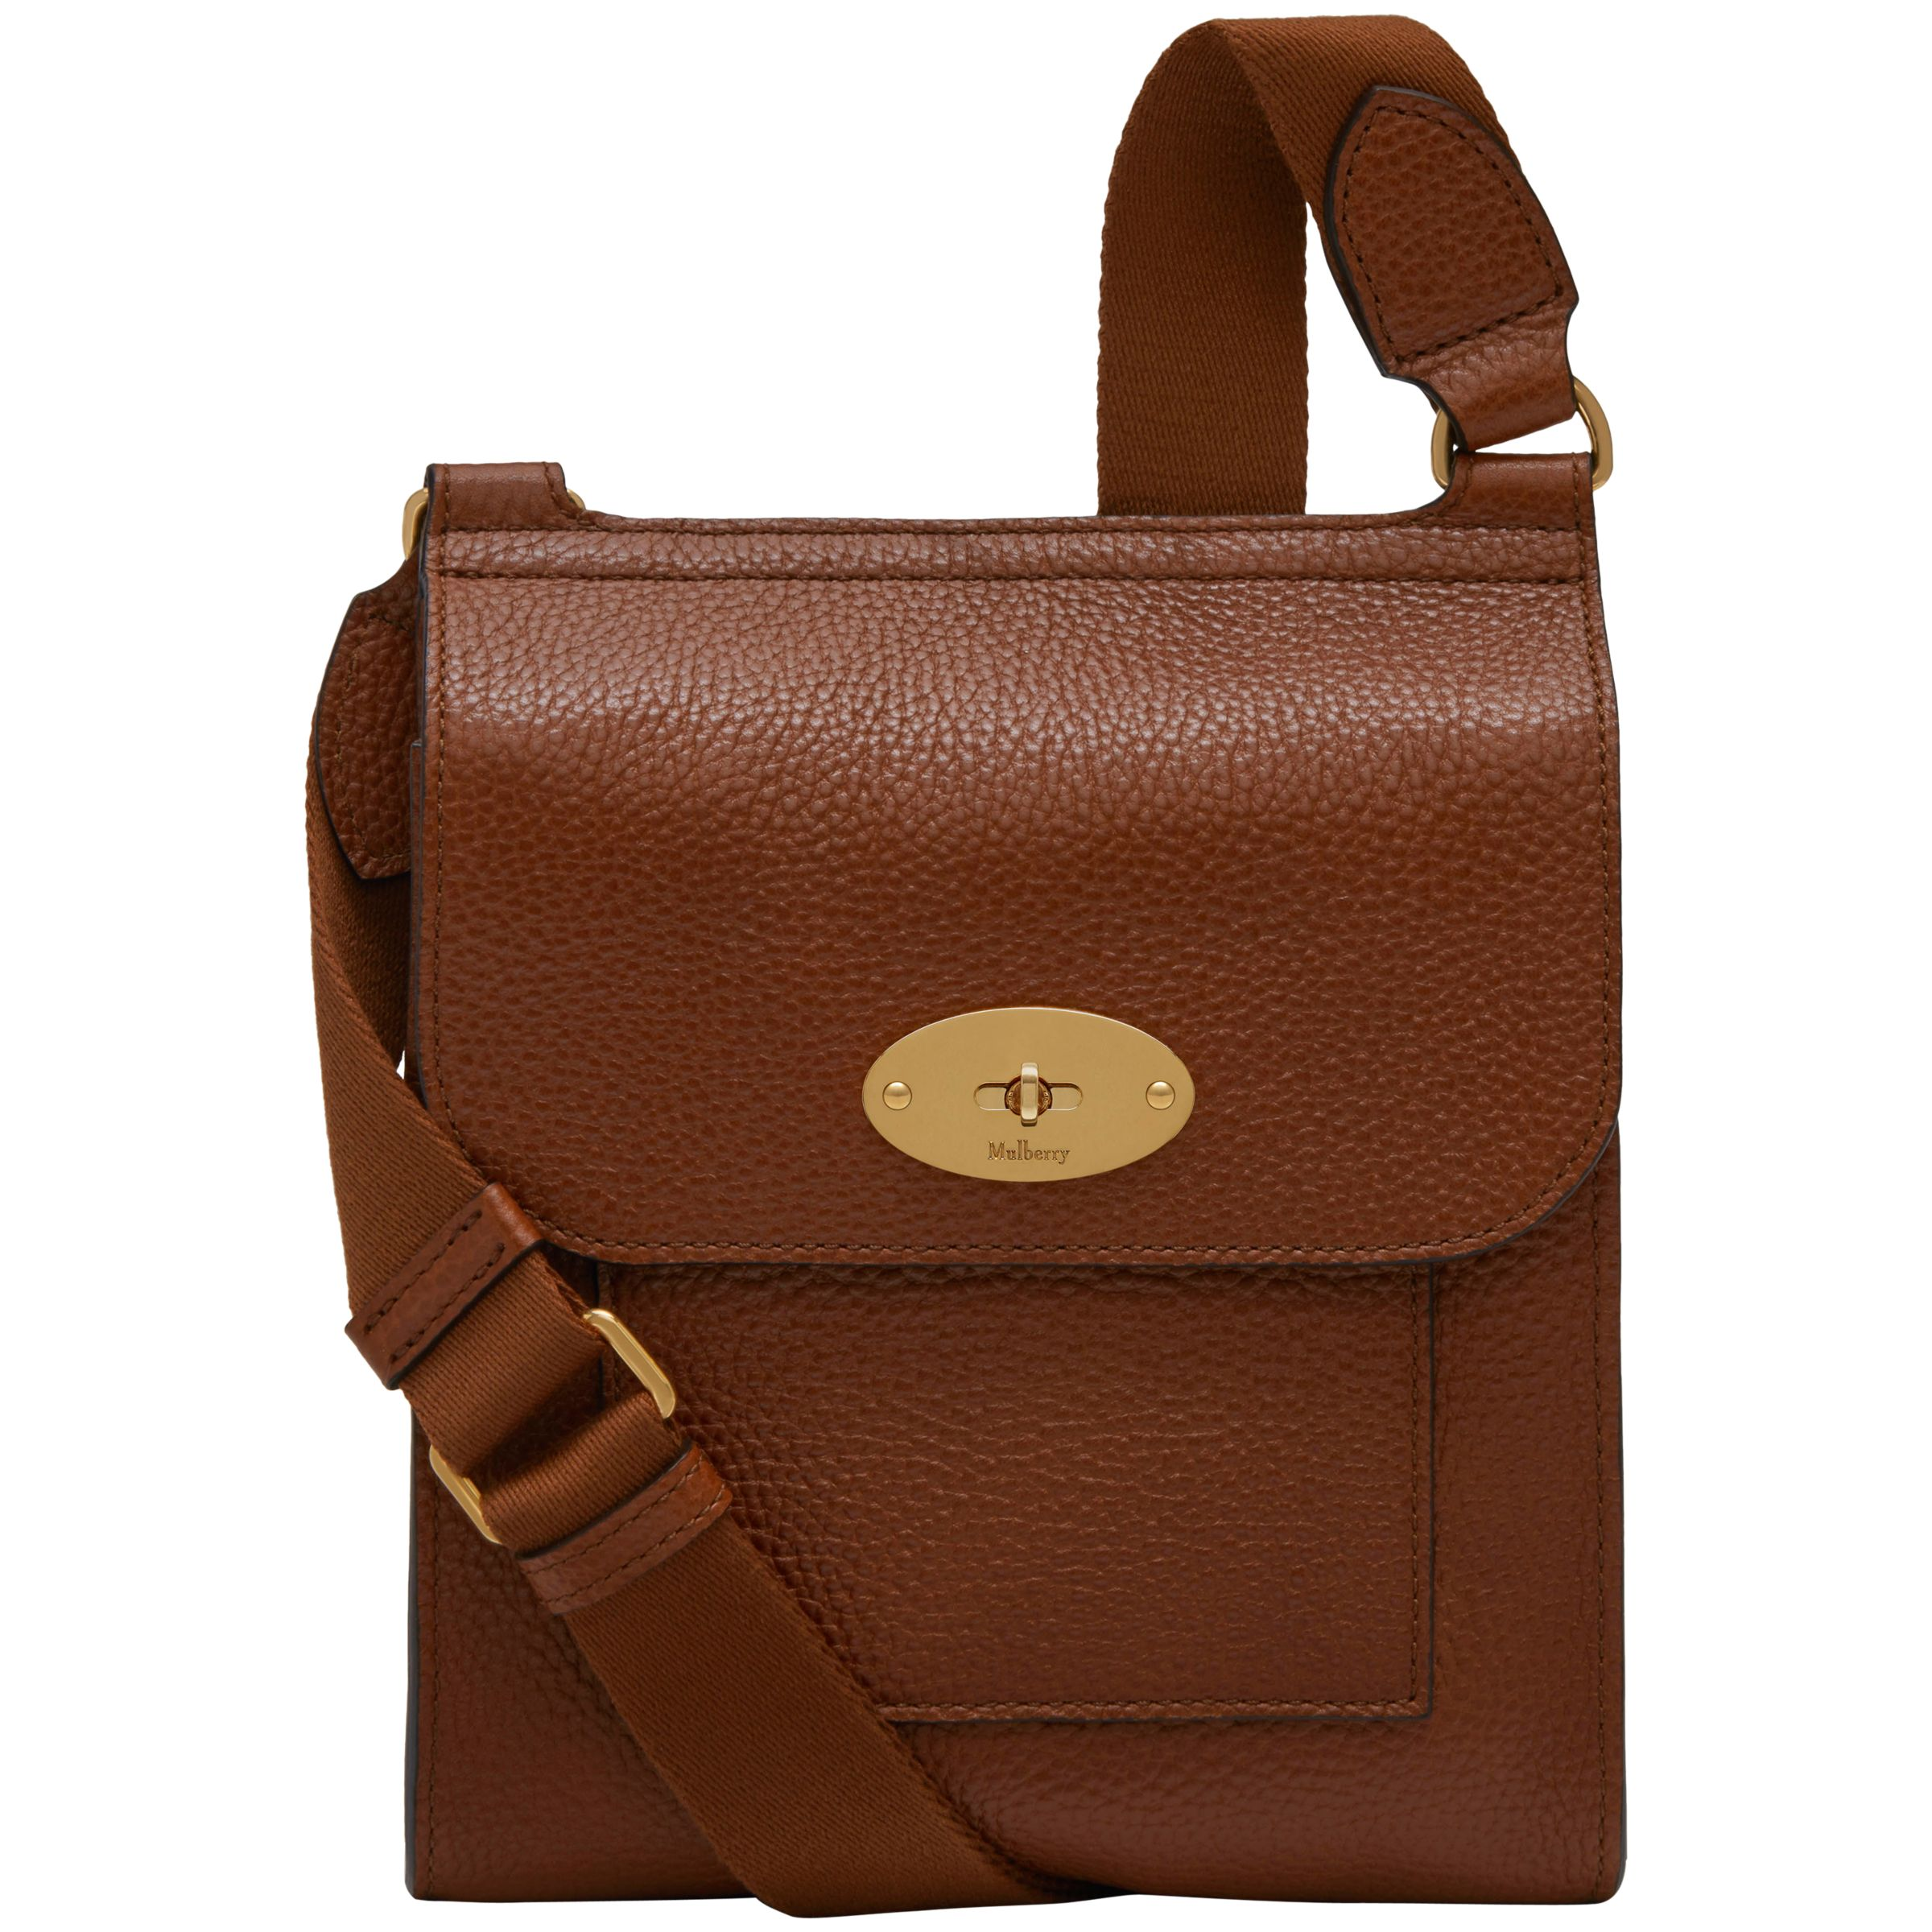 2ef70fbbb411 ... shoulder bag mulberry clutchunique cbd1a 0a8a6  ireland mulberry antony  grain veg tan leather small satchel at john lewis partners c21c9 36670